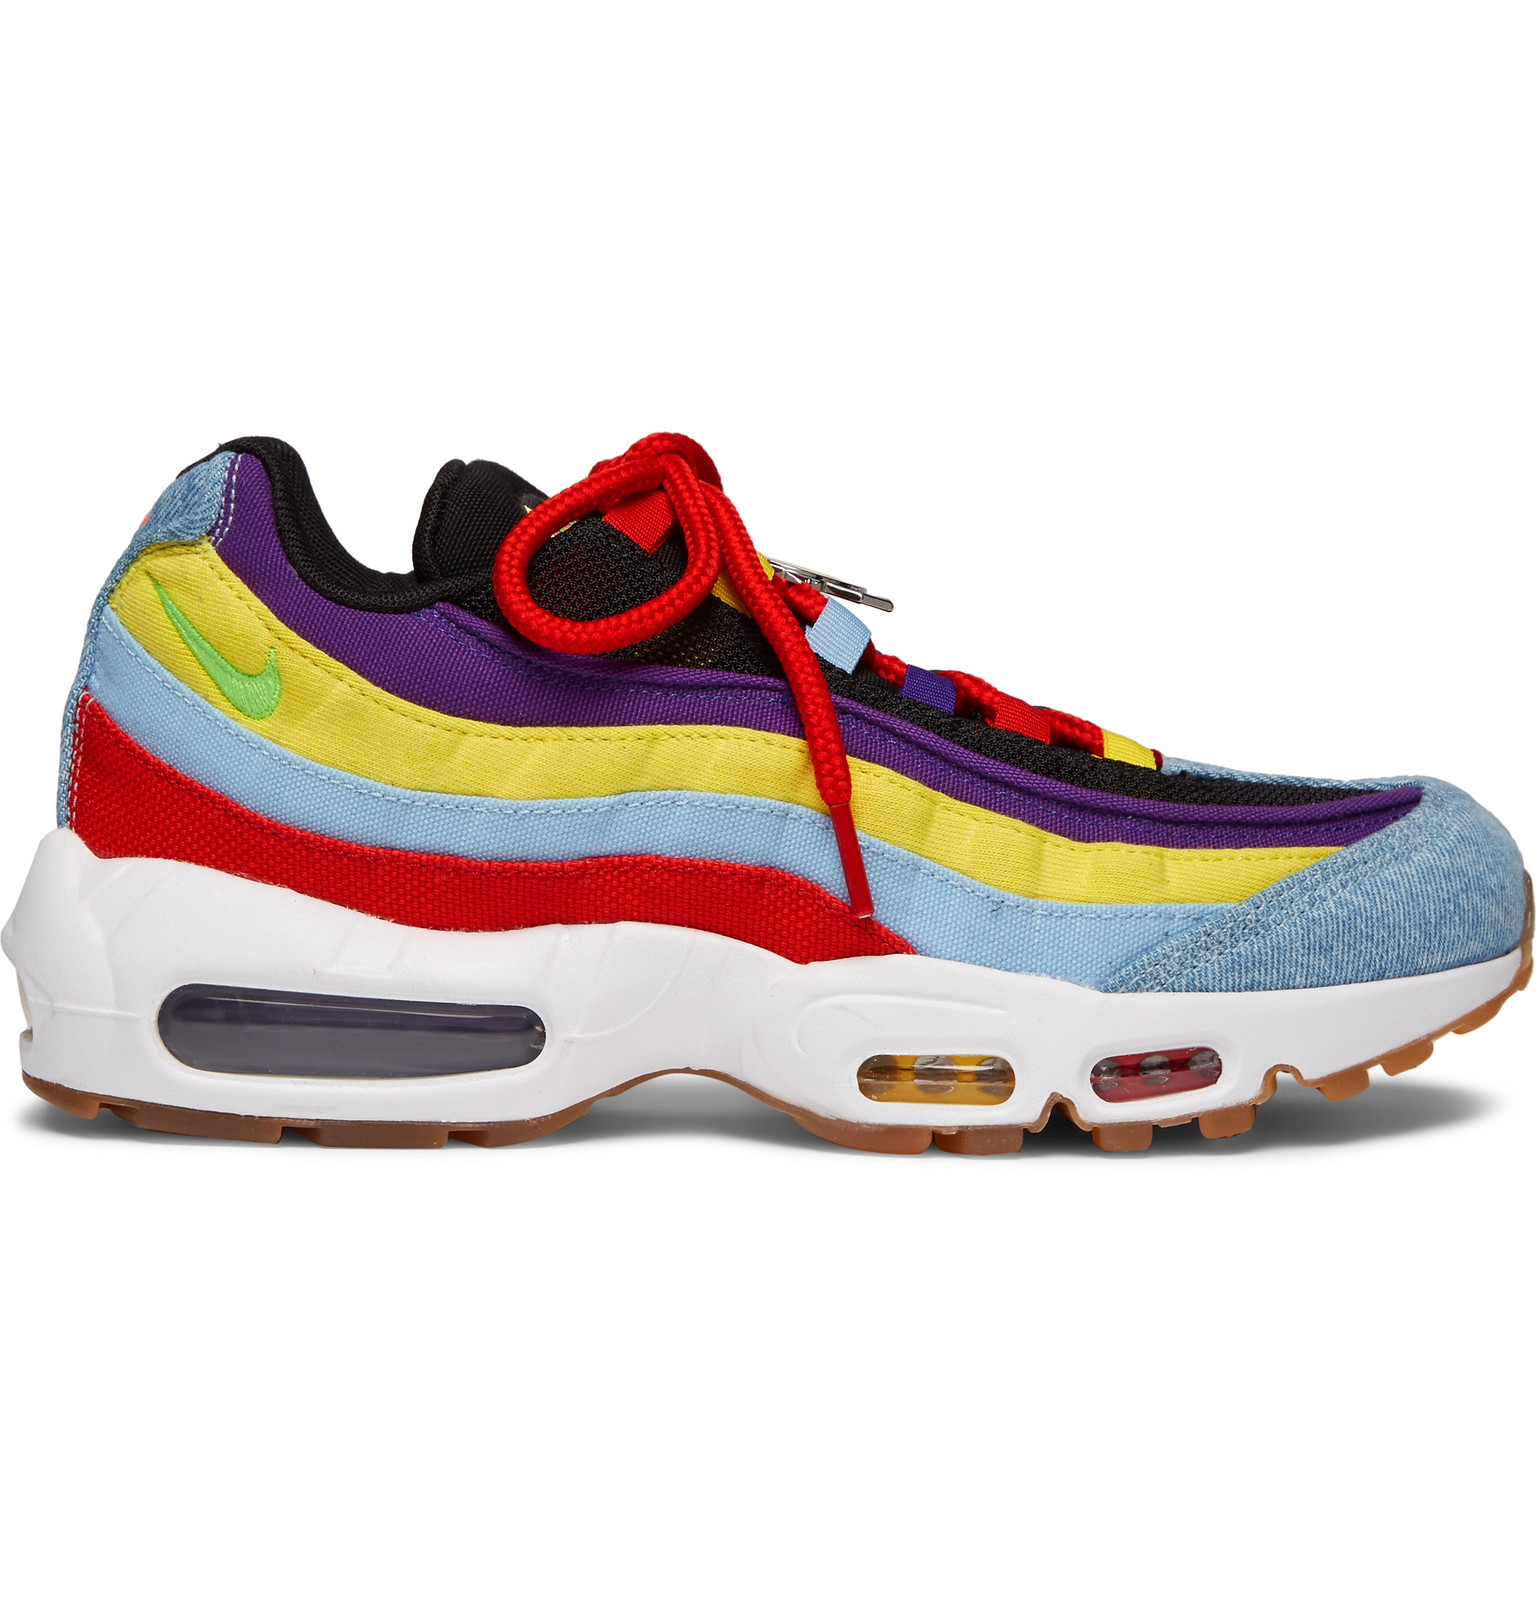 new collection famous brand best deals on Nike - Air Max 95 SP Denim, Canvas and Mesh Sneakers